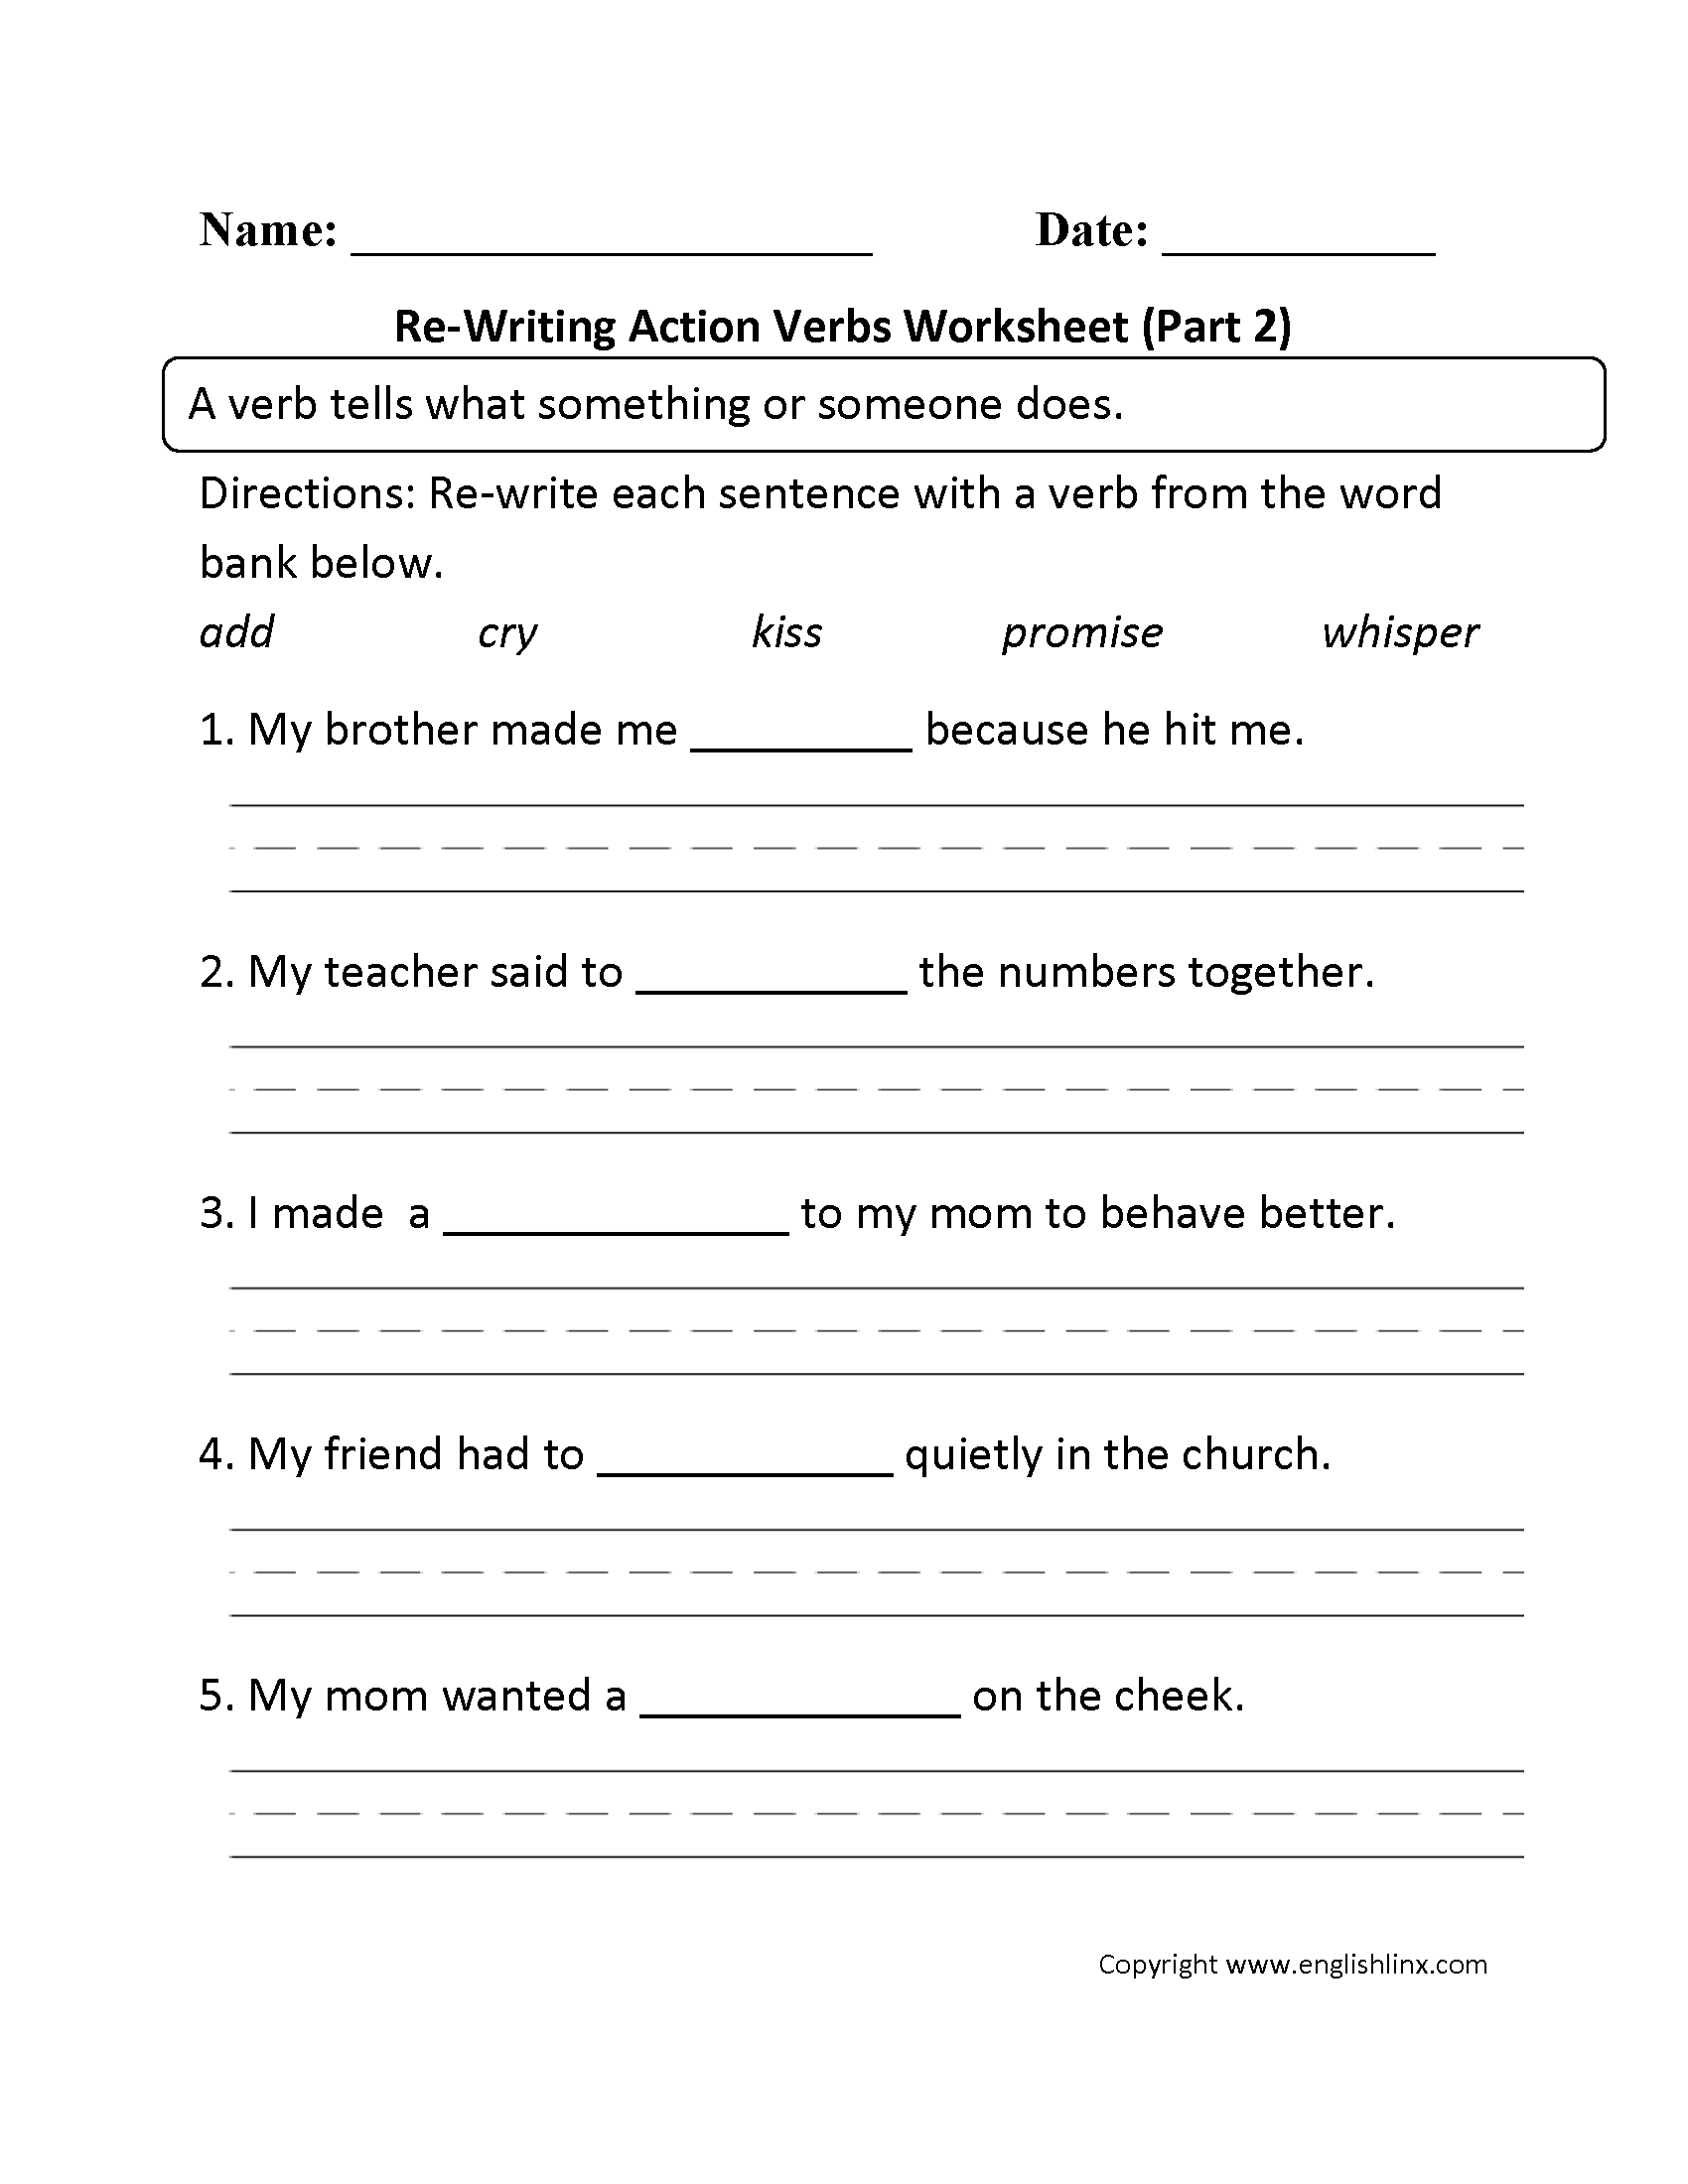 Worksheets Work Sheets On Action Verb verbs worksheets action worksheet